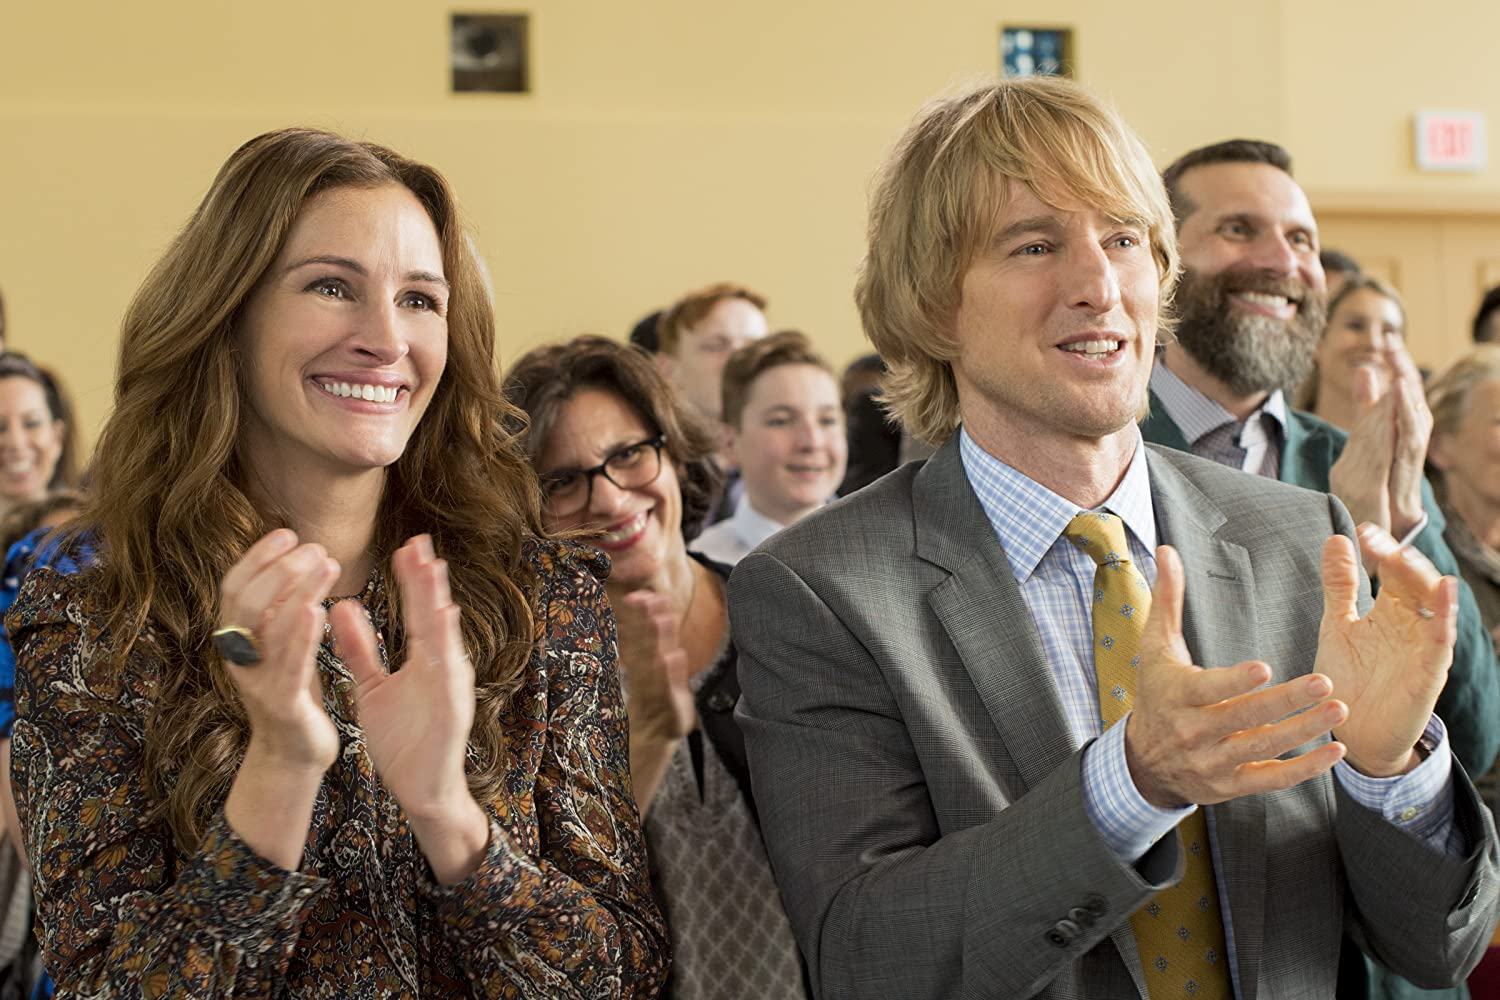 Julia Roberts and Owen Wilson in Wonder (2017)